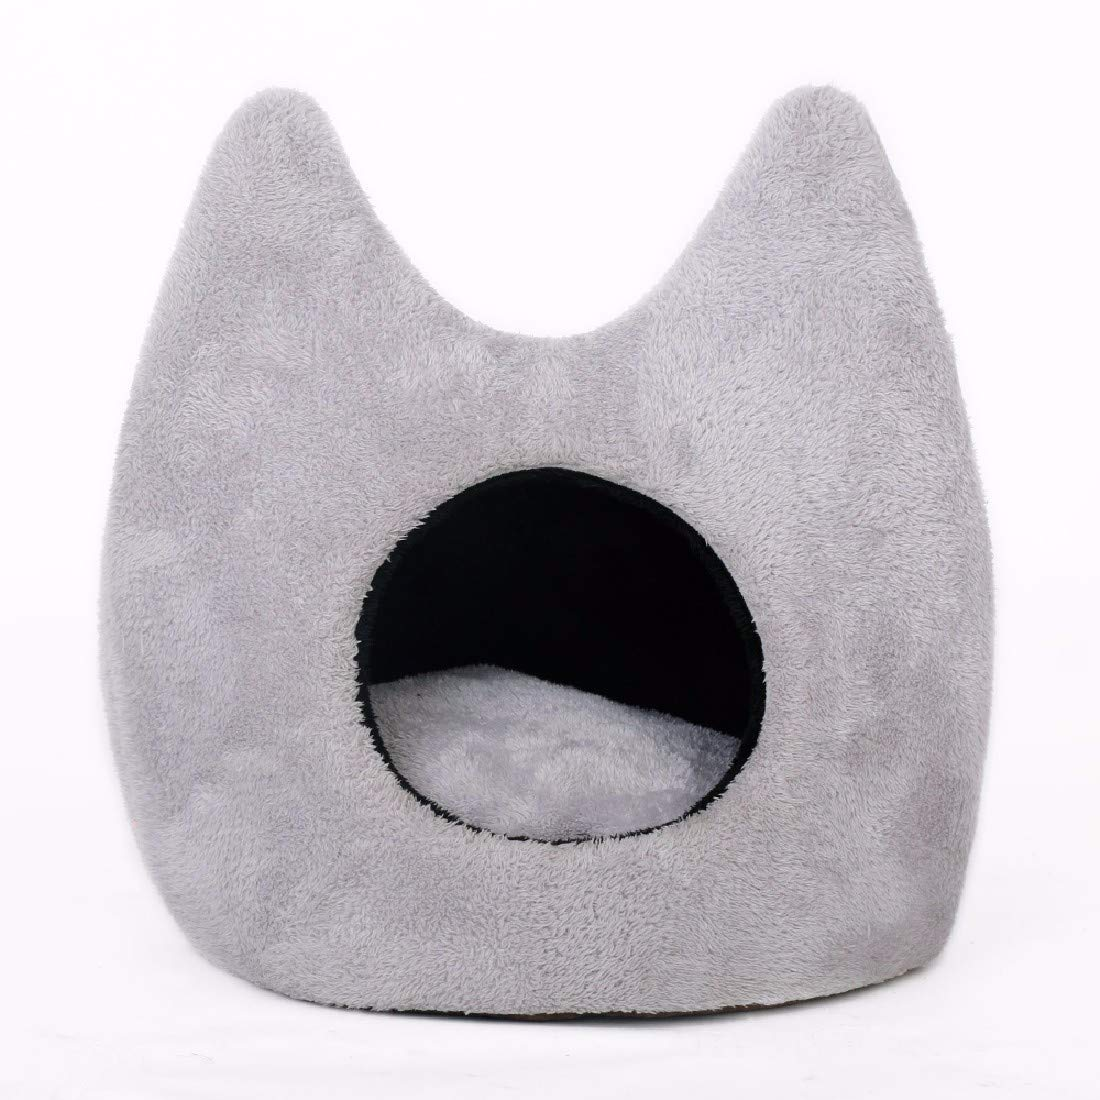 Pet Dog Cat House Bed Cat house house dog dog pet nest Mongolia bag closed cute cushion cat delivery room